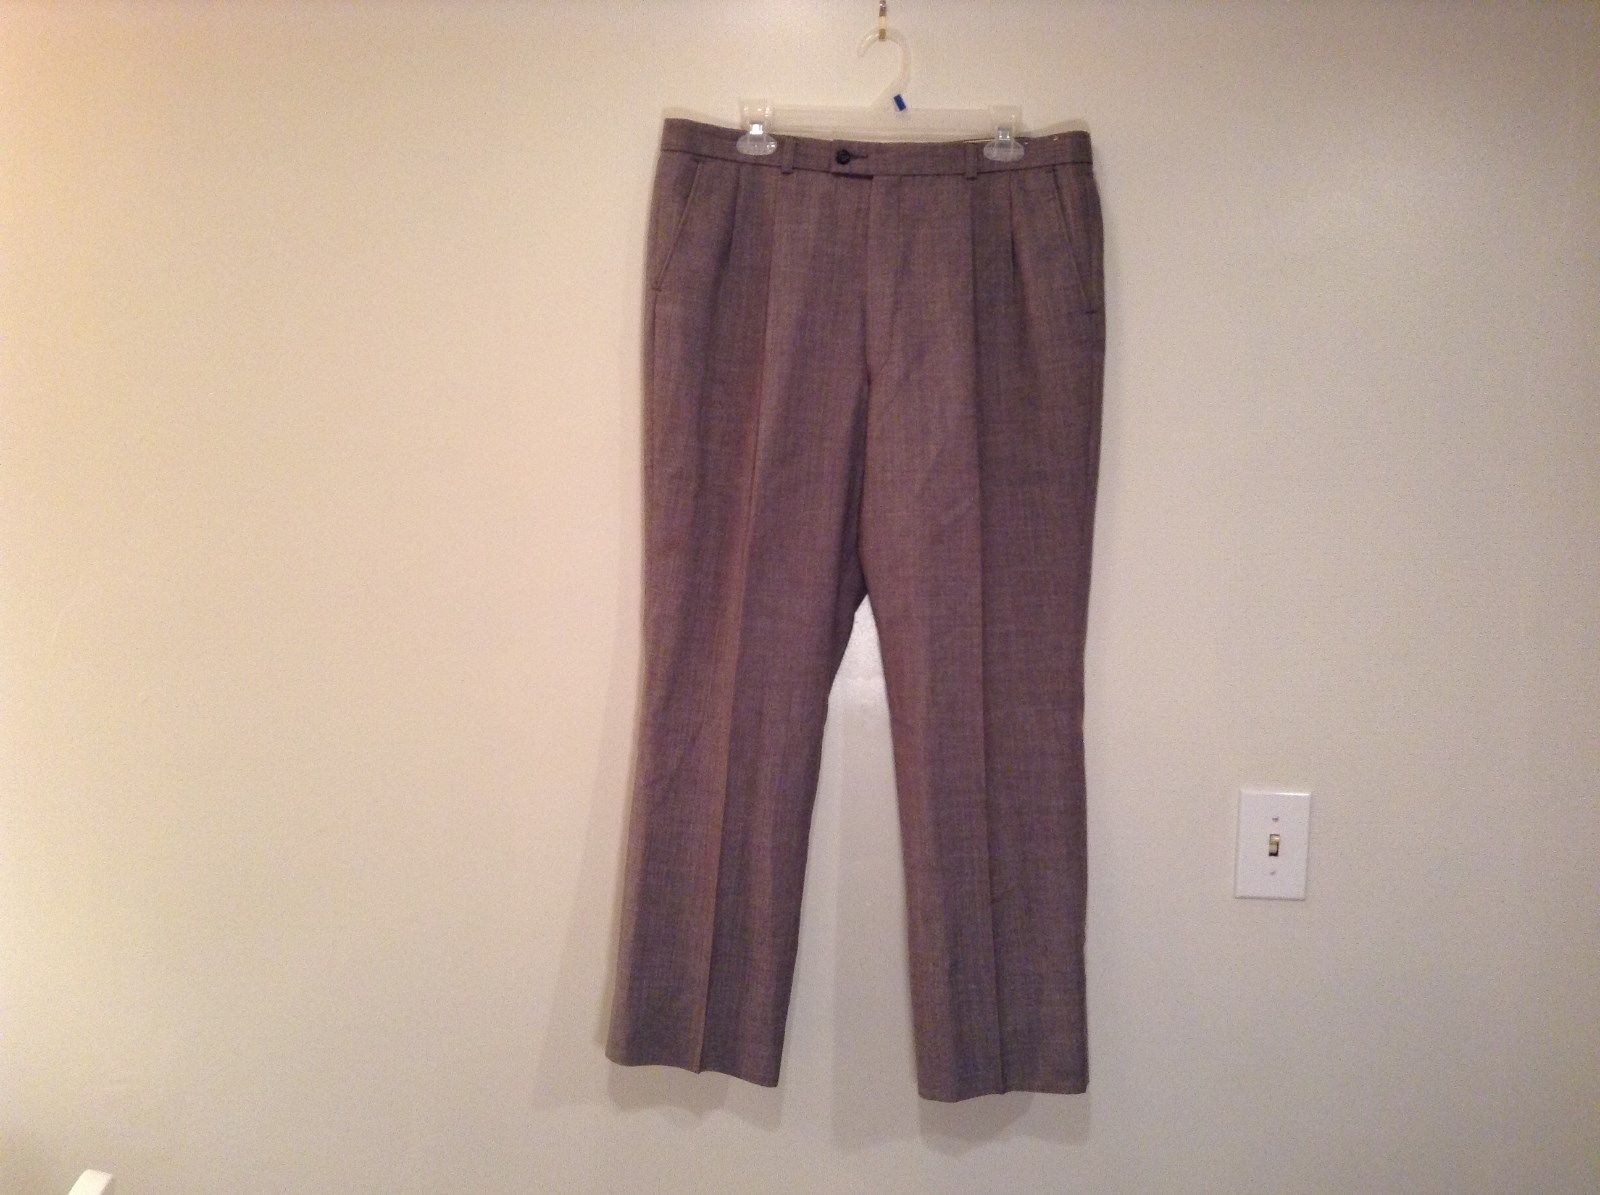 Size 42 Short Gray Pleated Front Dress Pants 100 Percent Wool No Tags